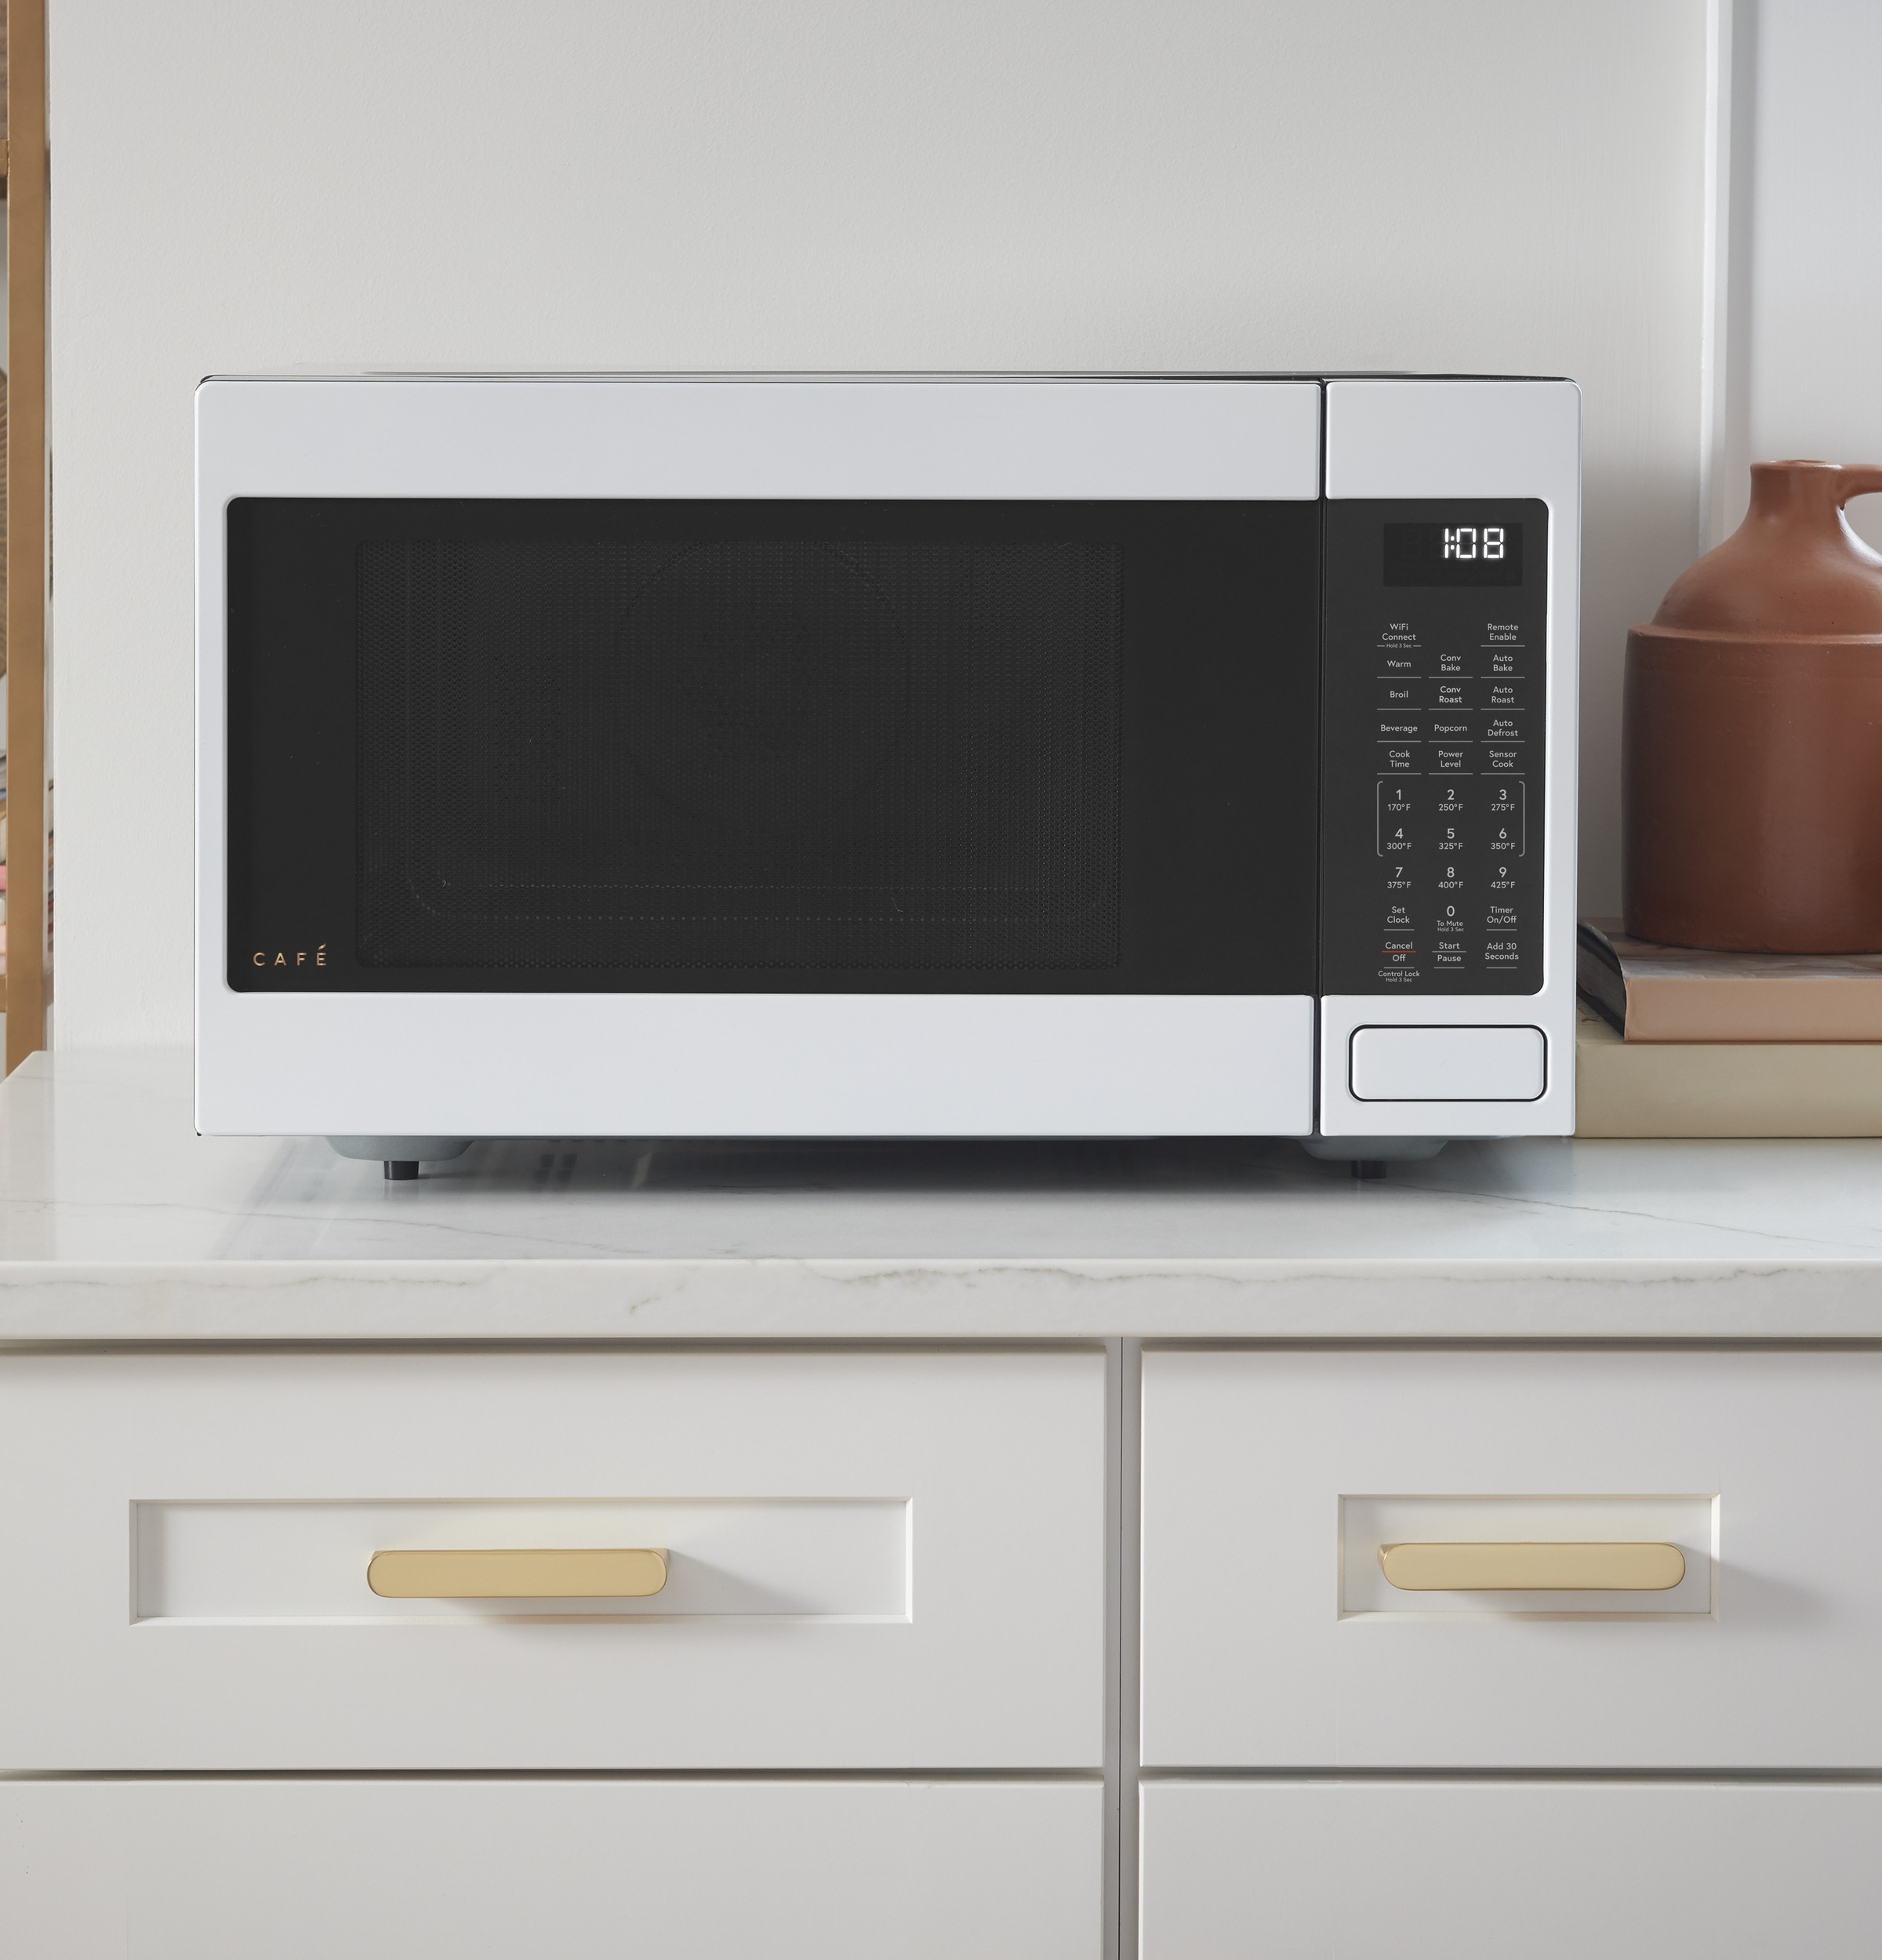 Ceb515p4nwm Overview Cafe 1 5 Cu Ft Smart Countertop